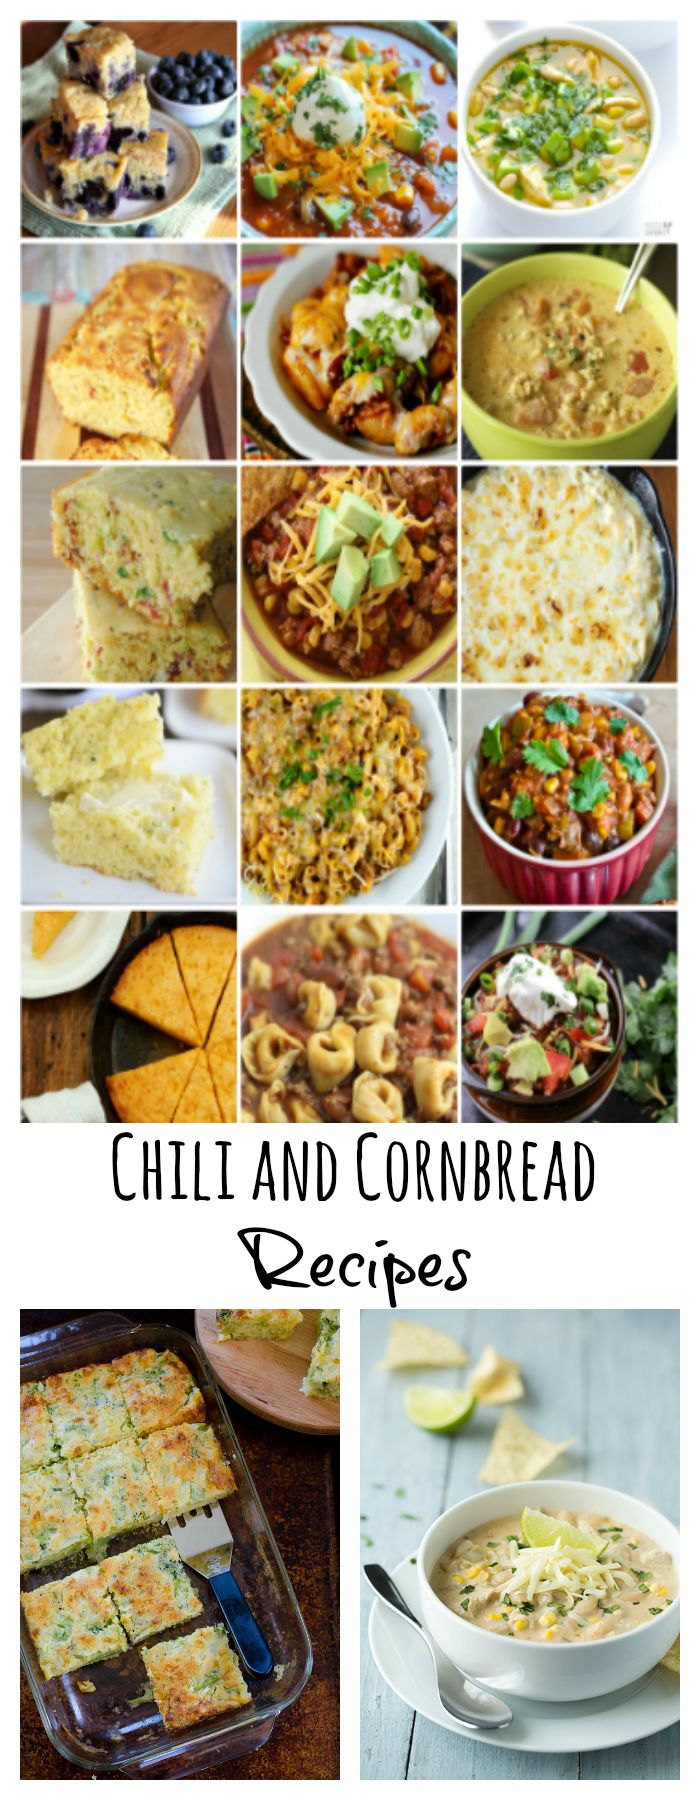 Chili-and-Cornbread-Recipes-2